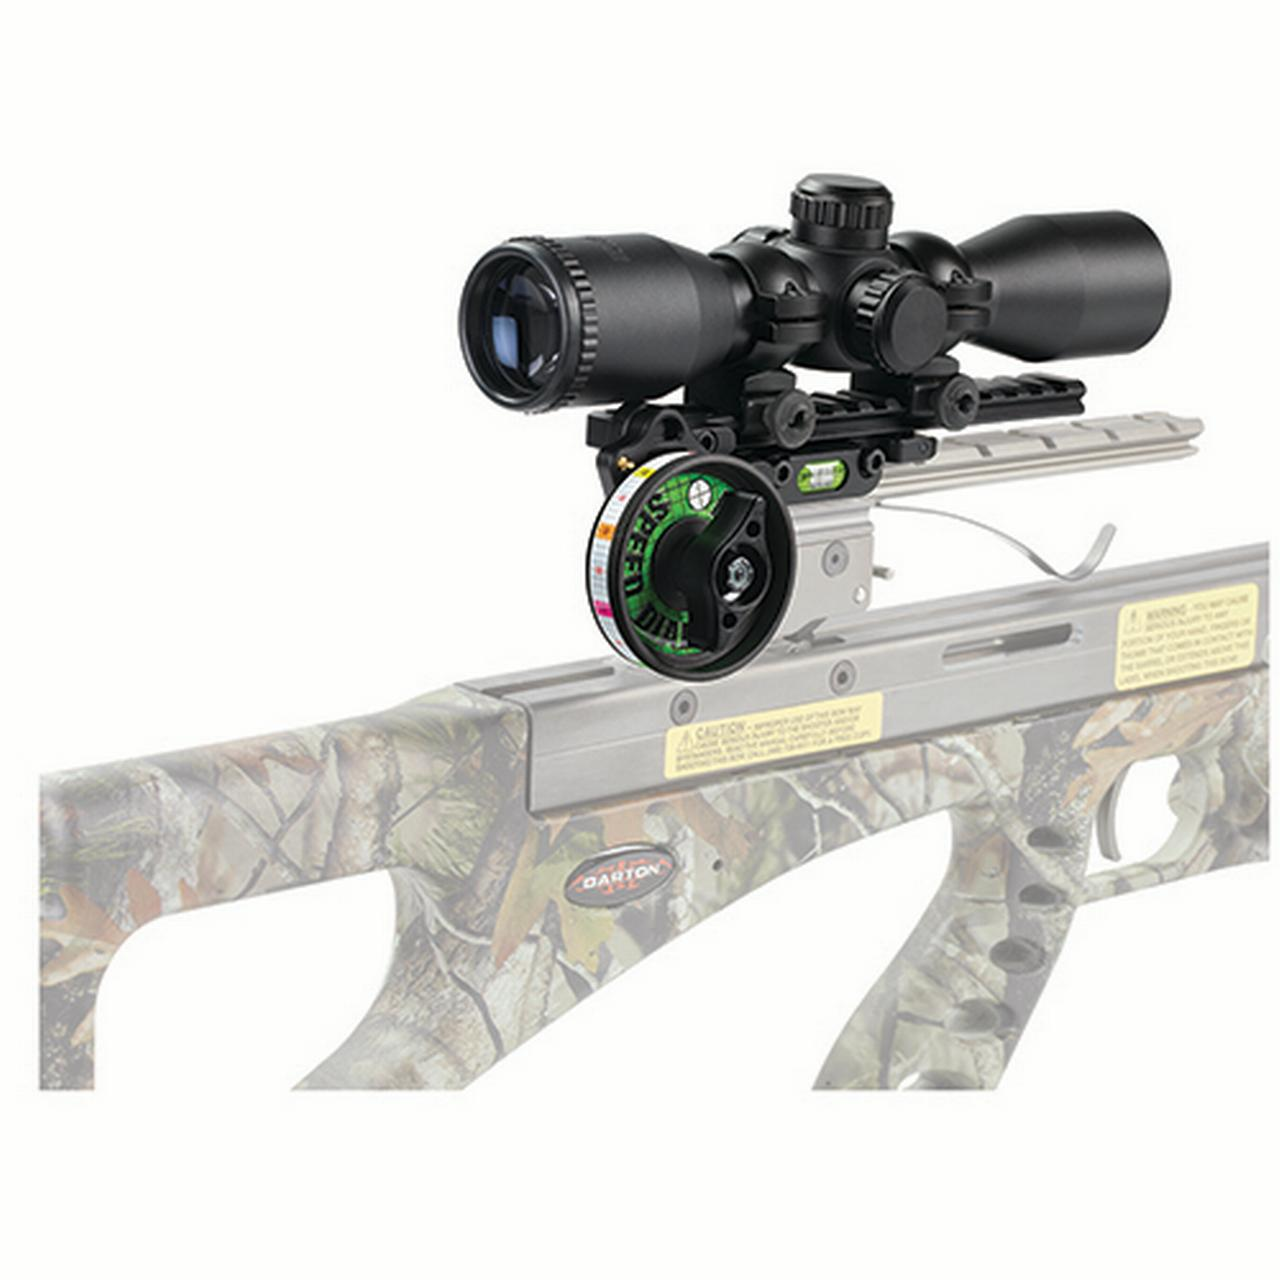 HHA Optimizer Lite Speed Dial with L4 Reticle Scope, SD-L4